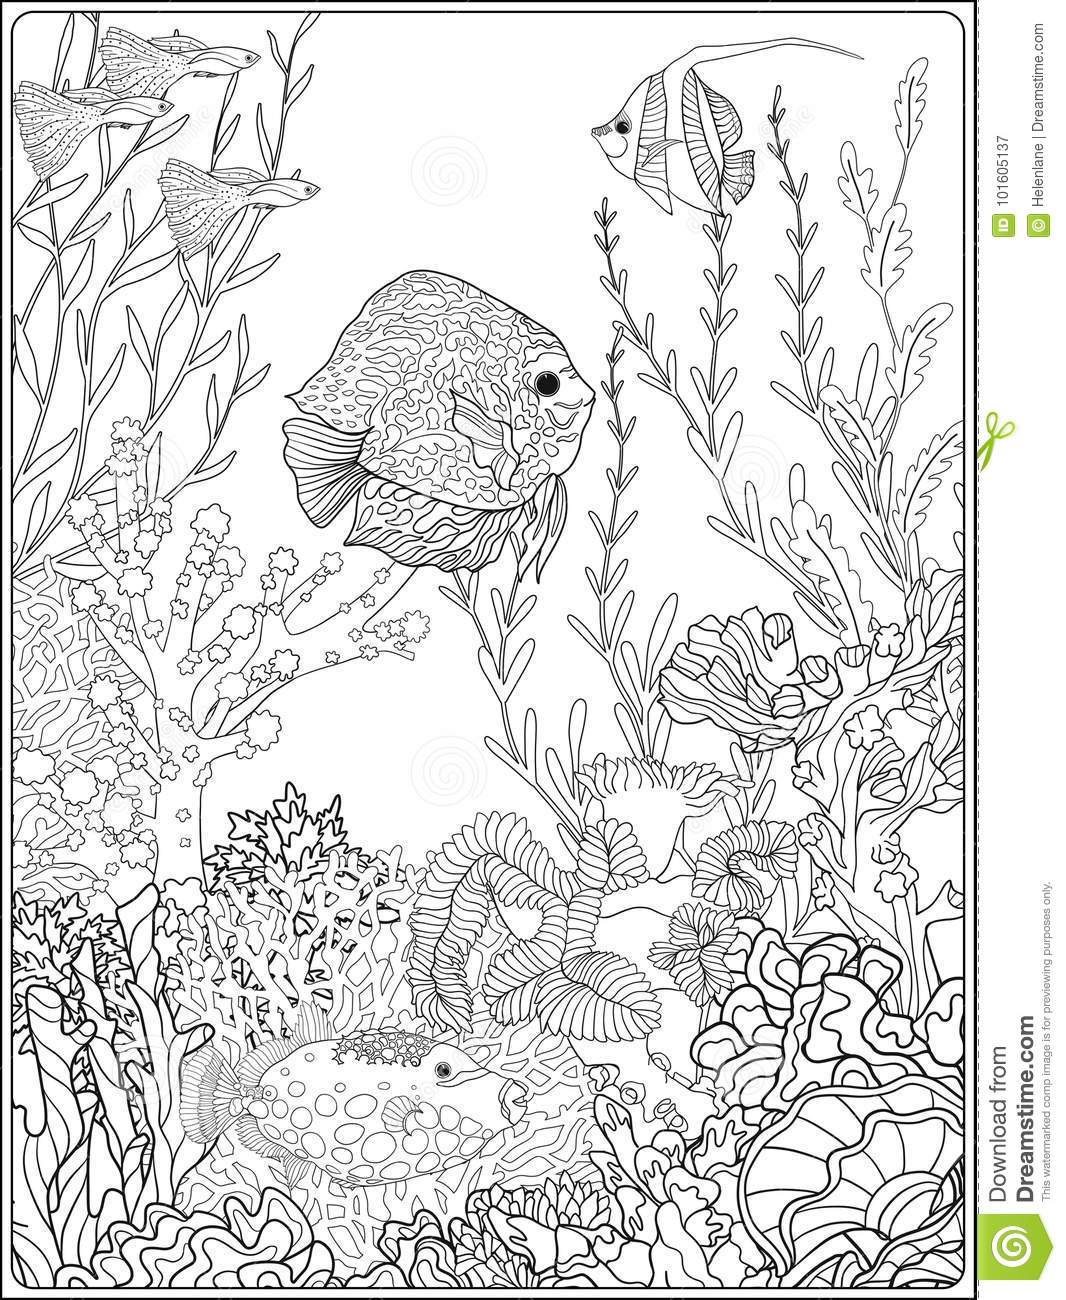 Coral Reef Coloring Page : coral, coloring, Coral, Coloring, Stock, Illustrations, Illustrations,, Vectors, Clipart, Dreamstime